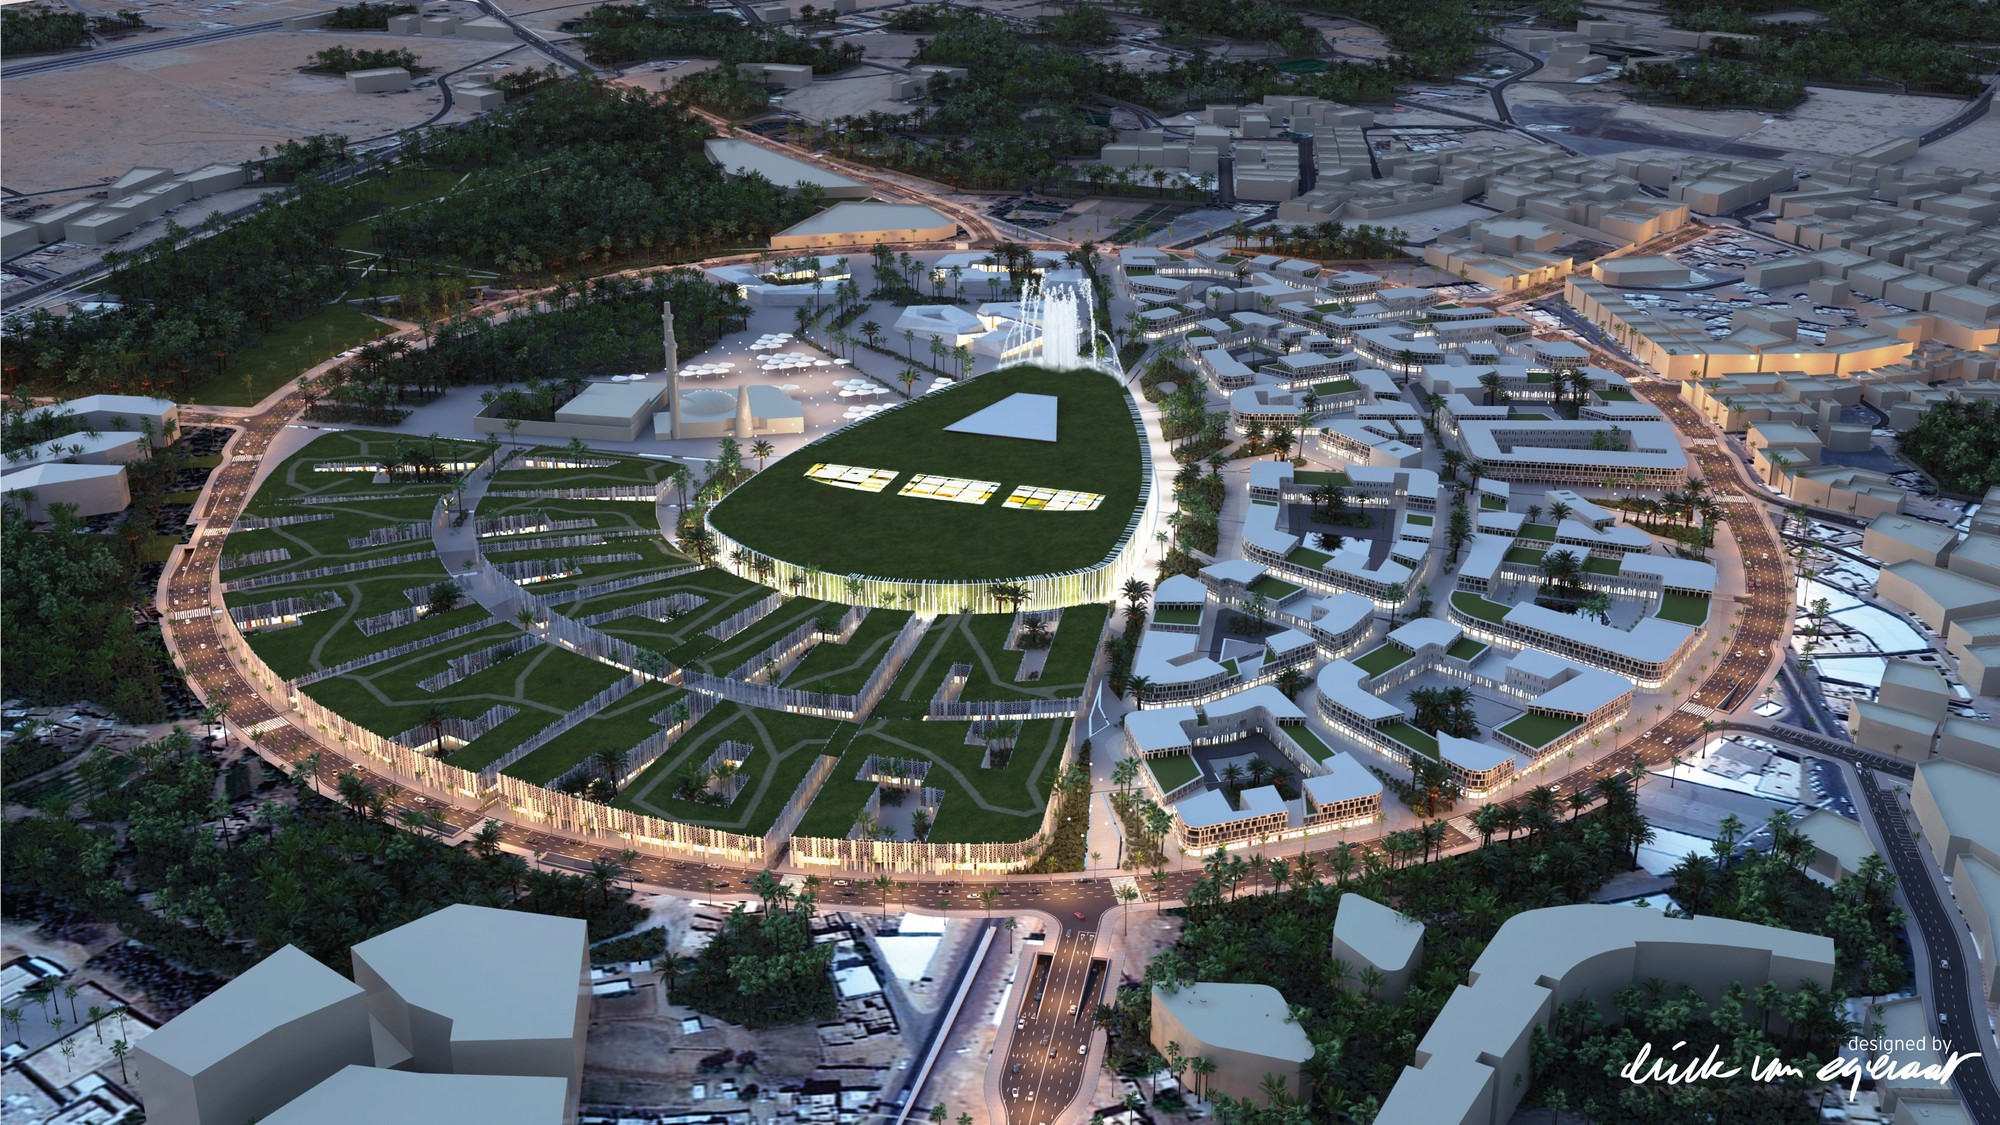 Erick van Egeraat Designs Pedestrianized City Center in Saudi Arabia, Aerial View. Image © (designed by) Erick van Egeraat BV